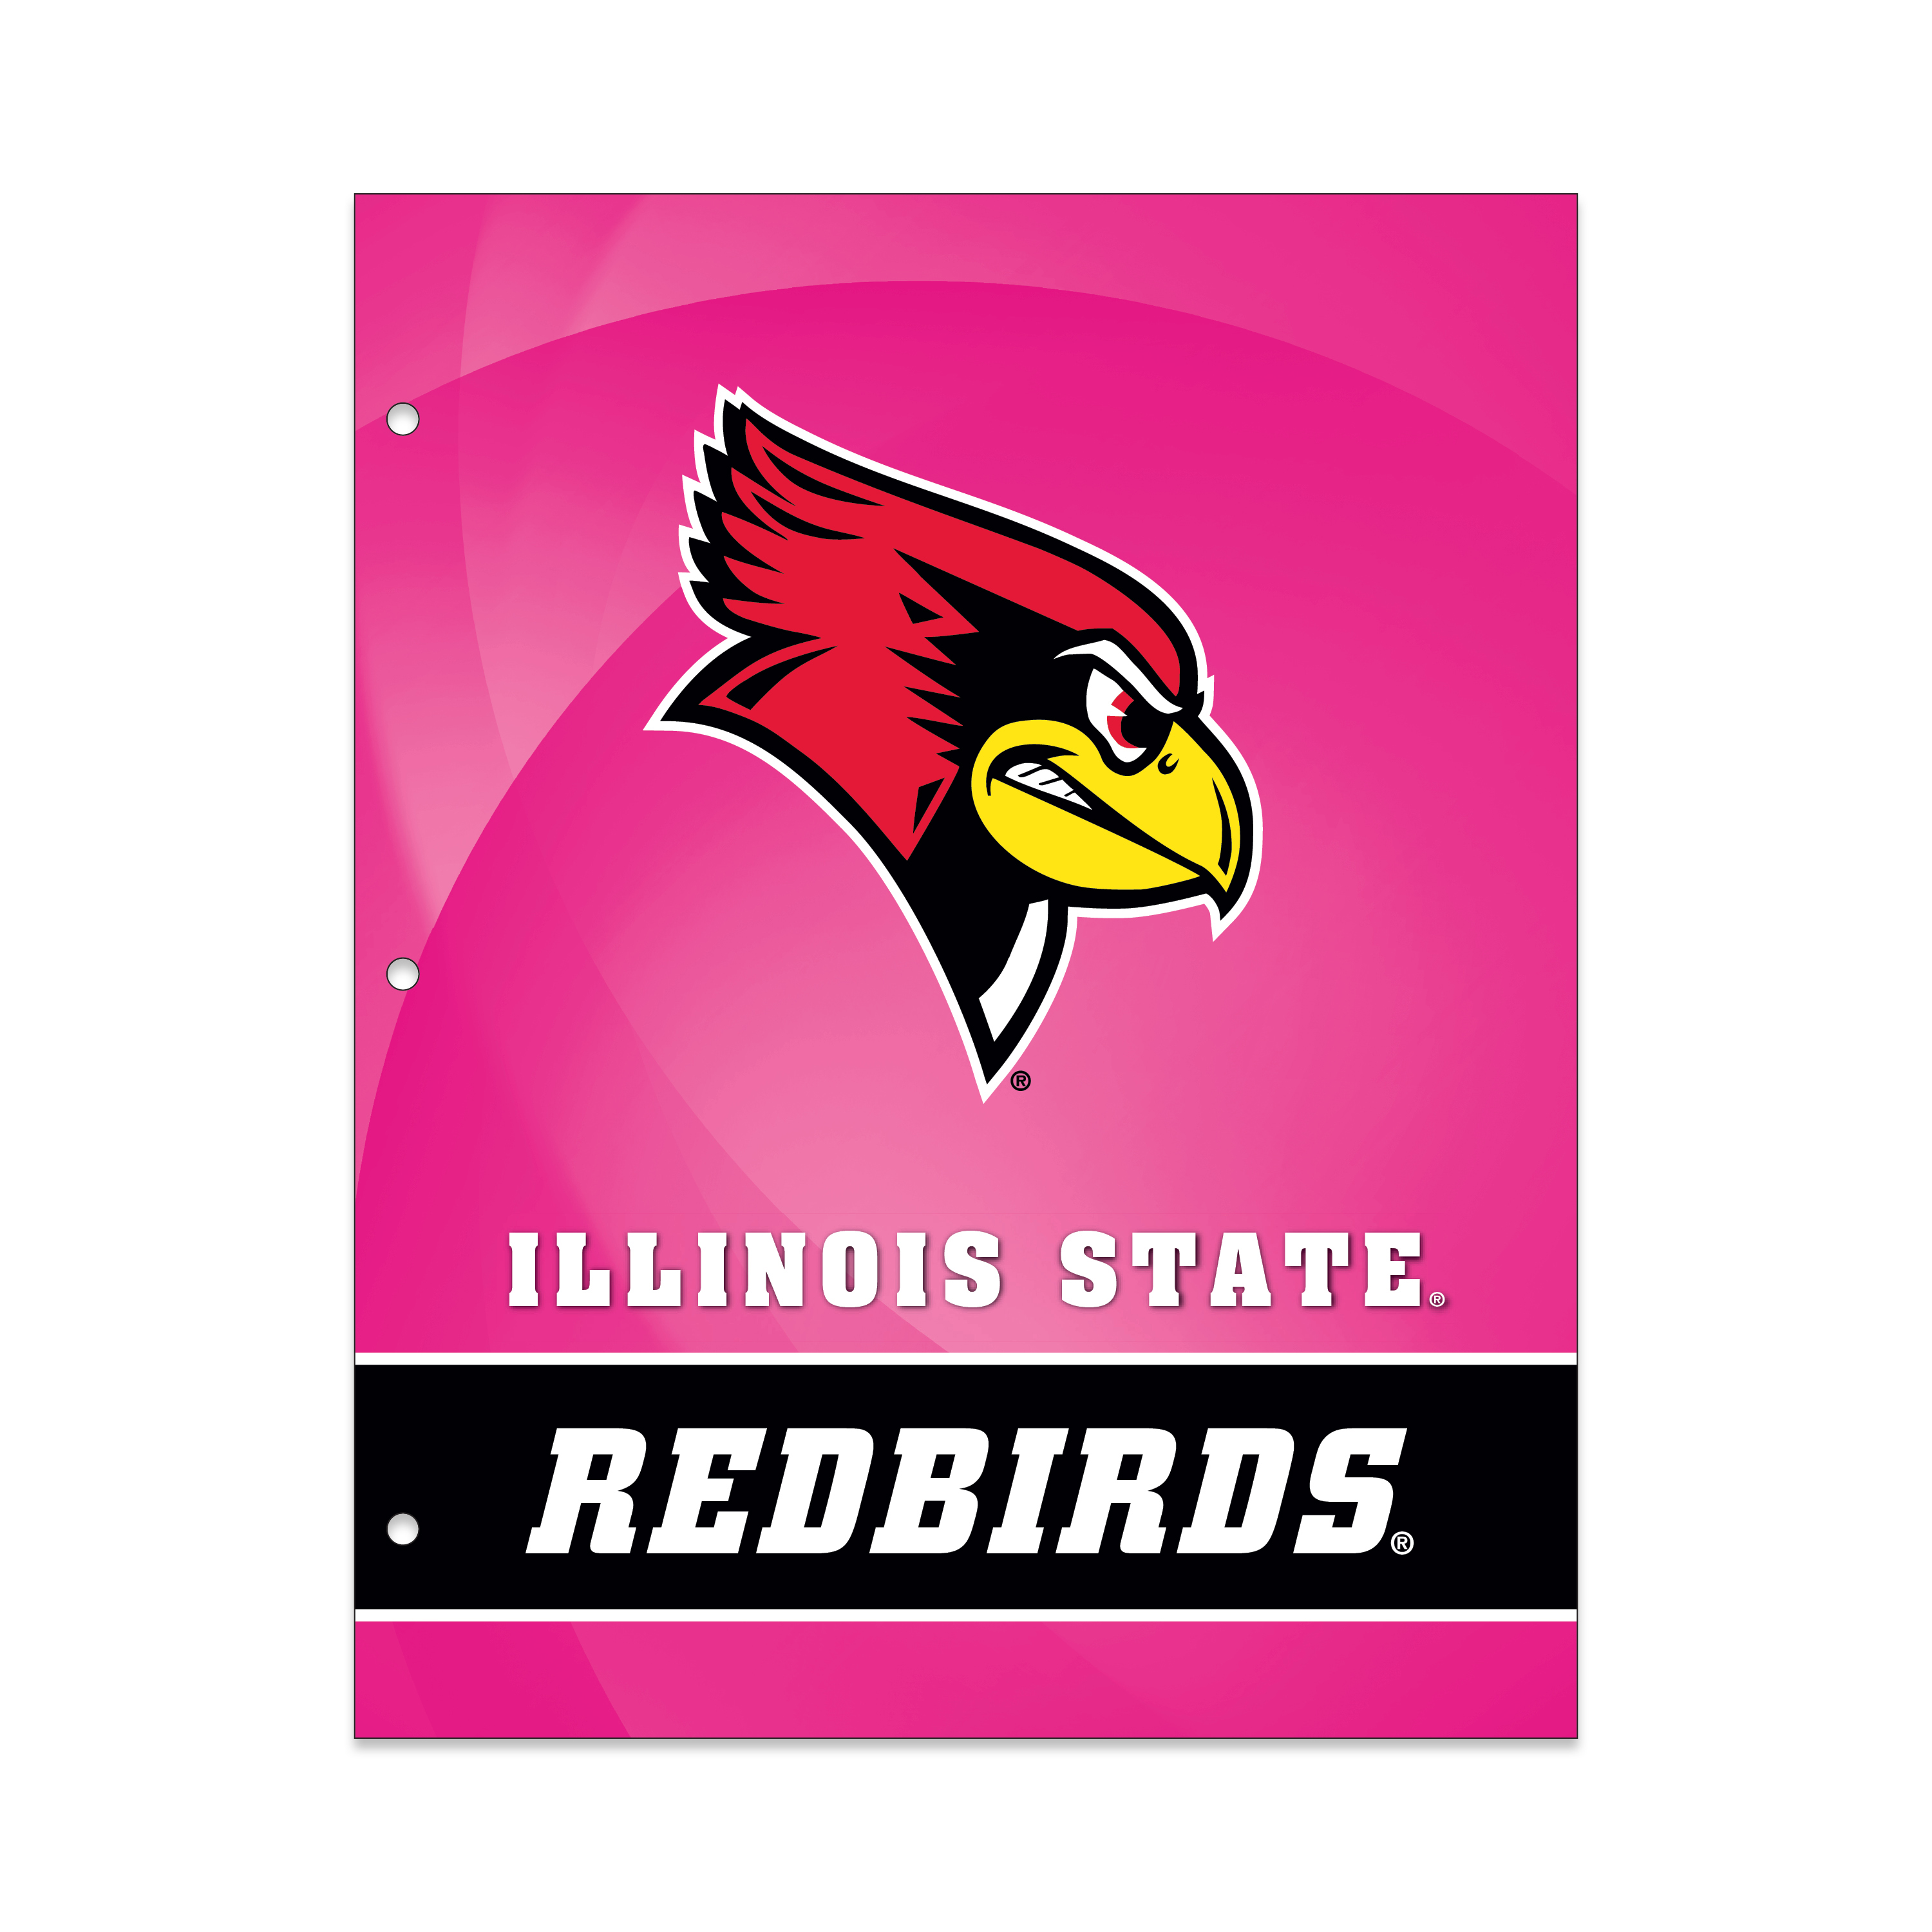 NCAA Illinois State Redbirds 2 Pocket Portfolio, Three Hole Punched, Fits Letter Size